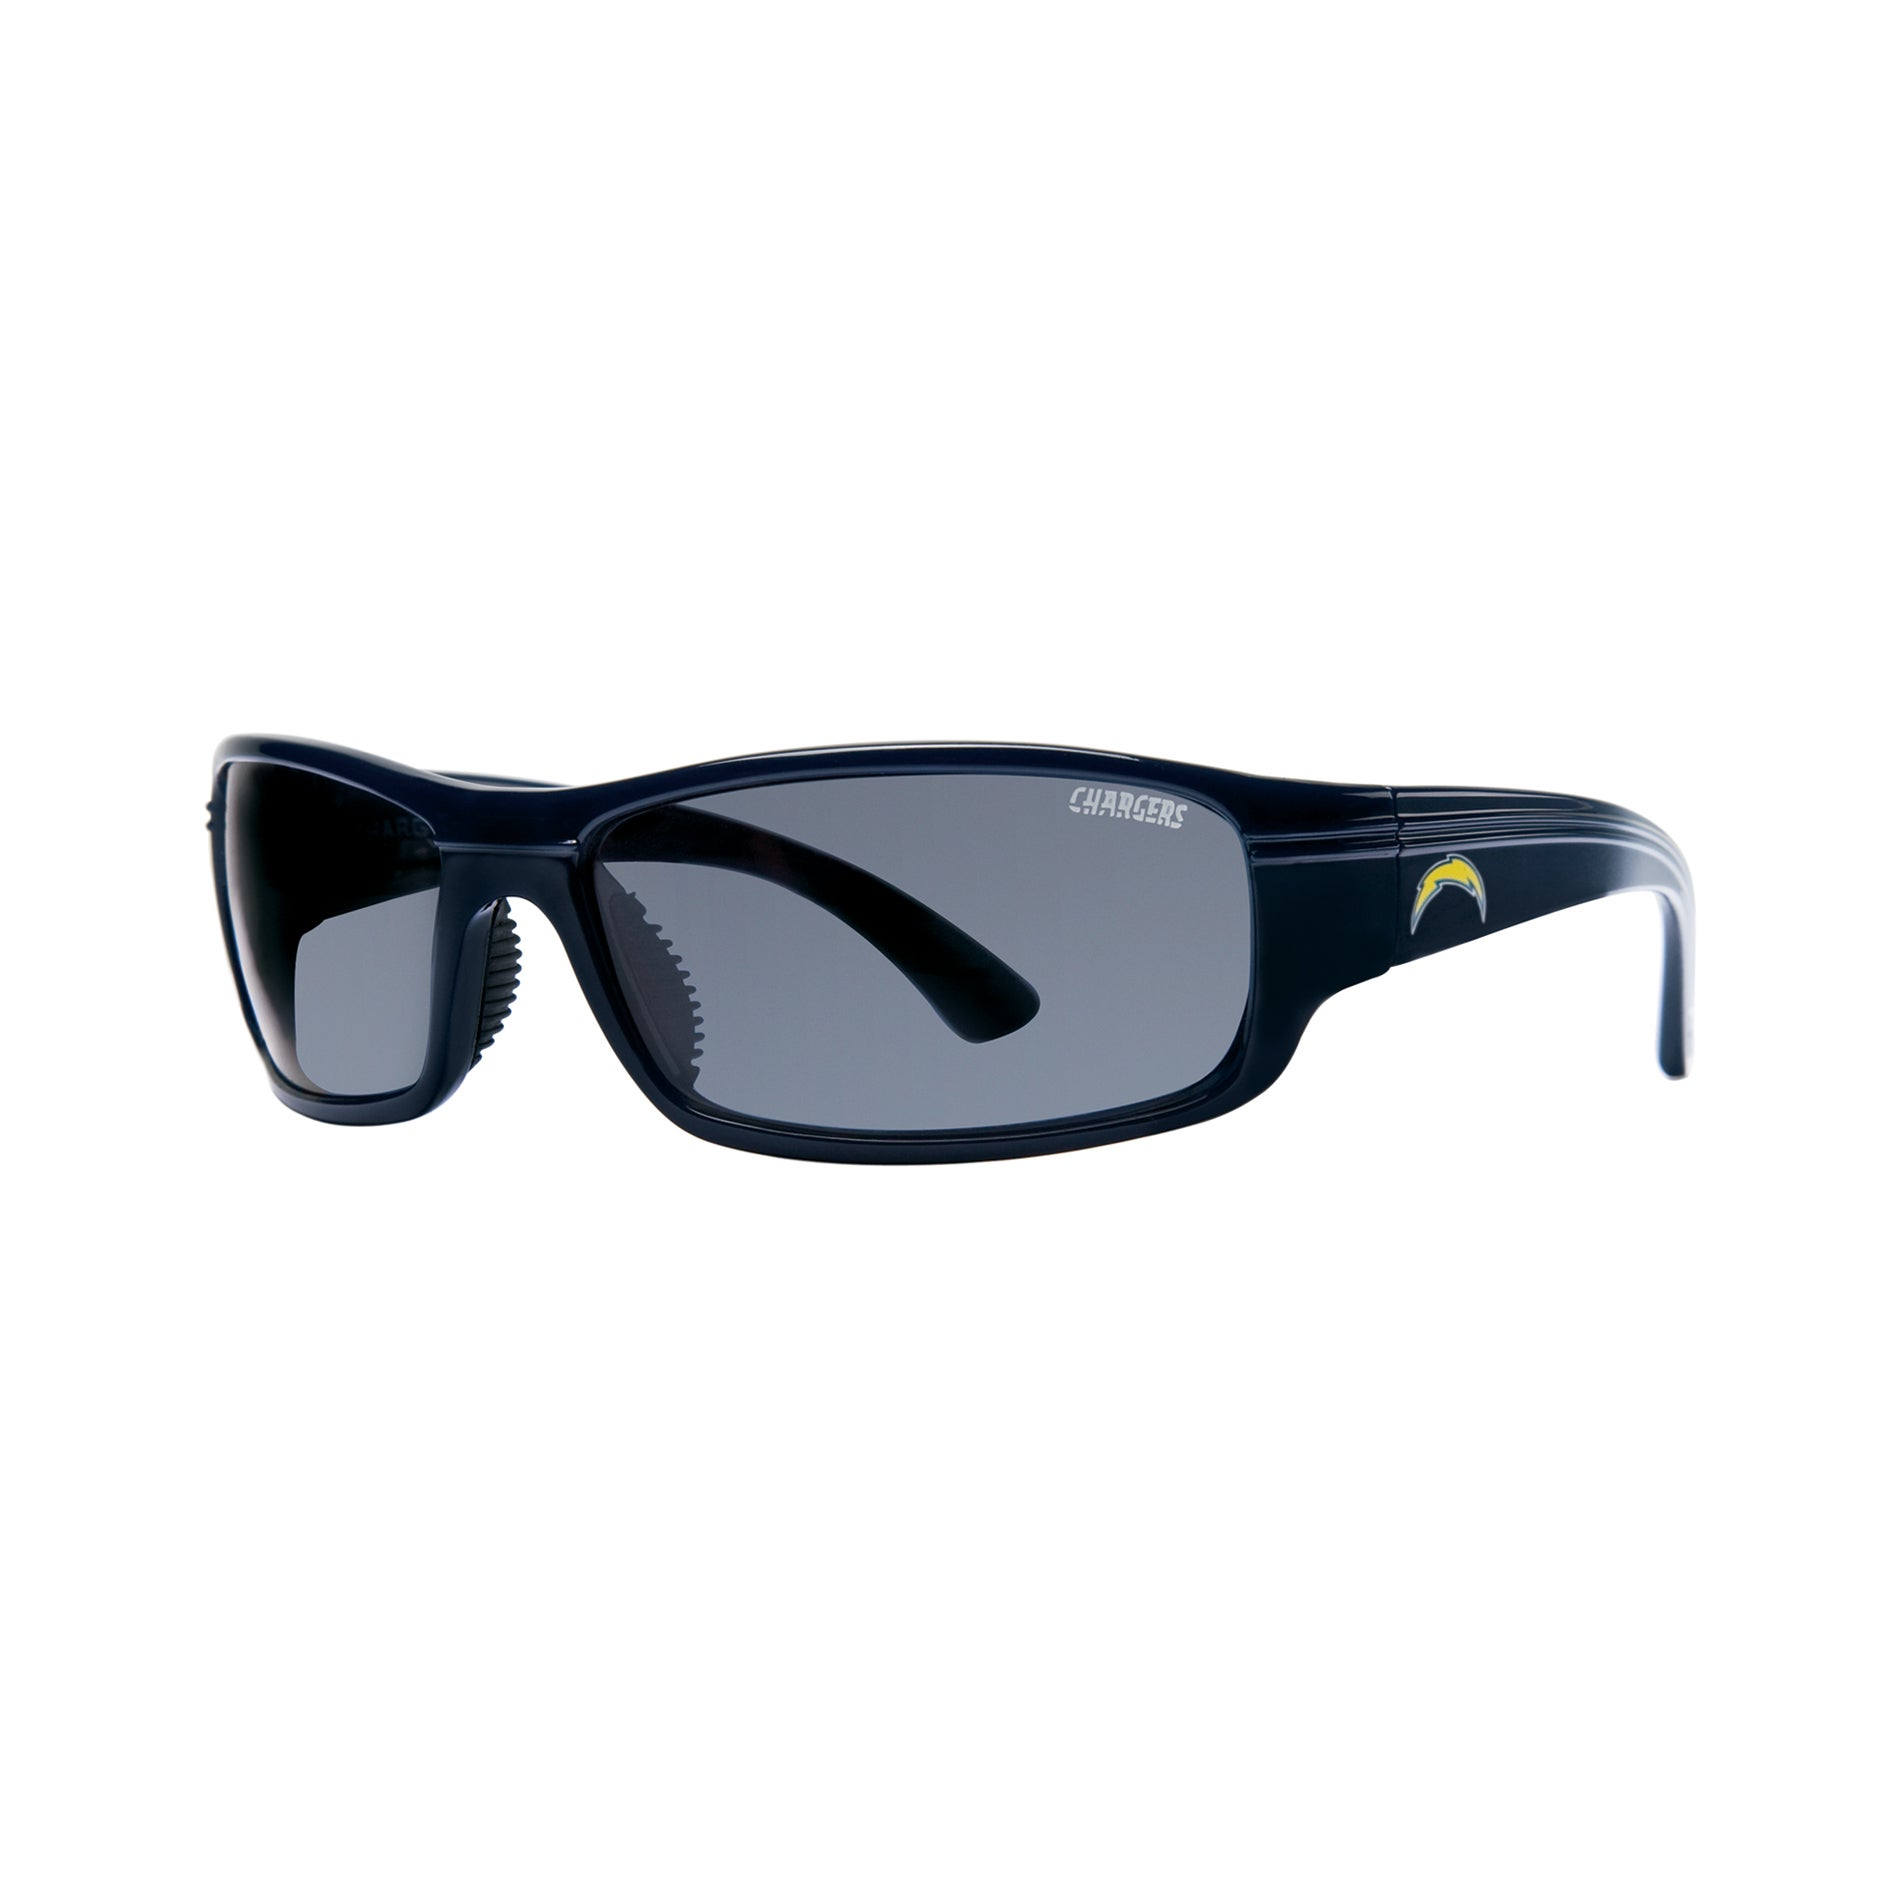 Modo San Diego Chargers Men's 'Block 2' Sunglasses